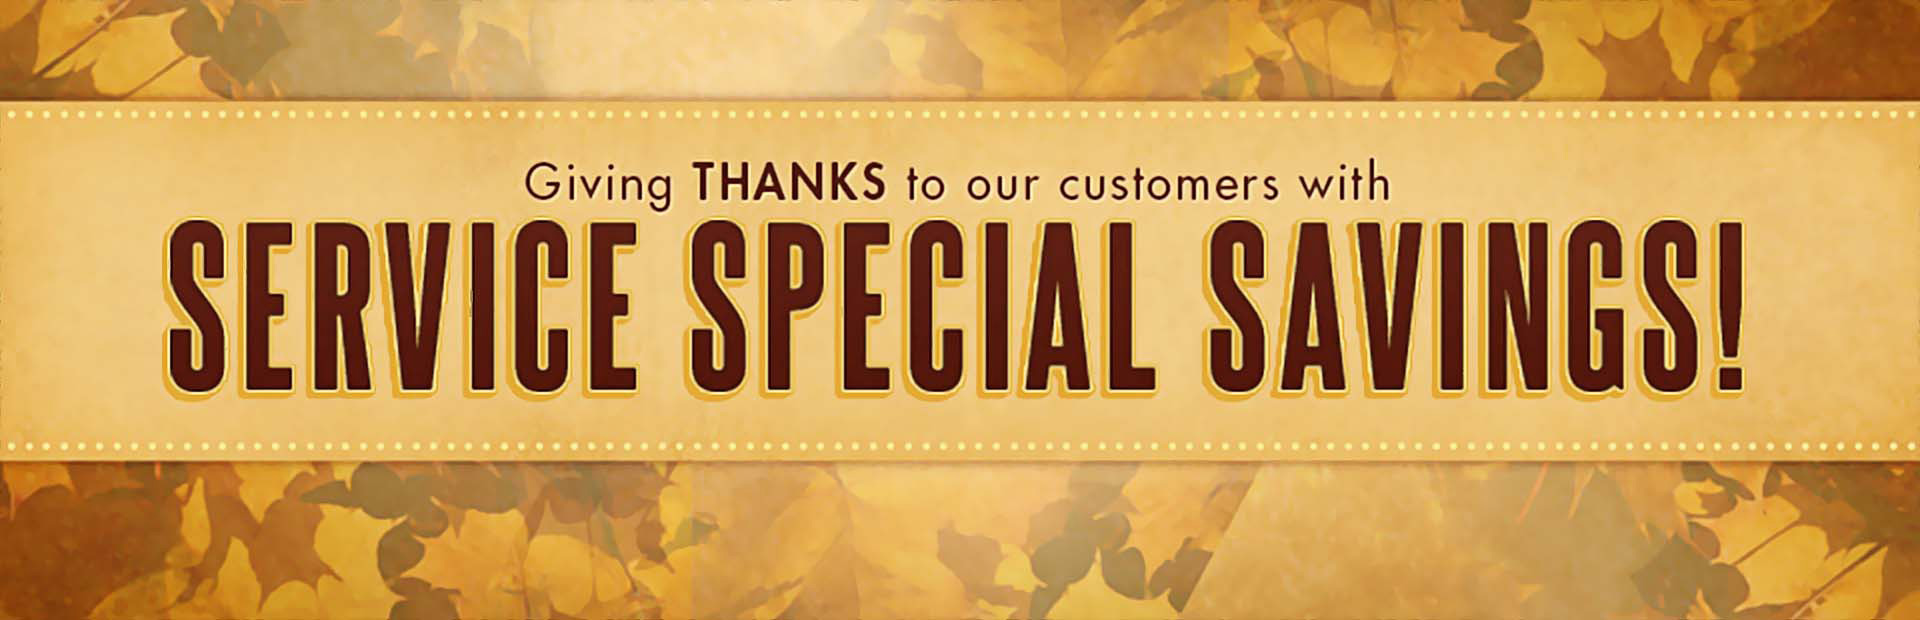 Service Special Savings: We're giving thanks to our customers! Click here to view our coupons.